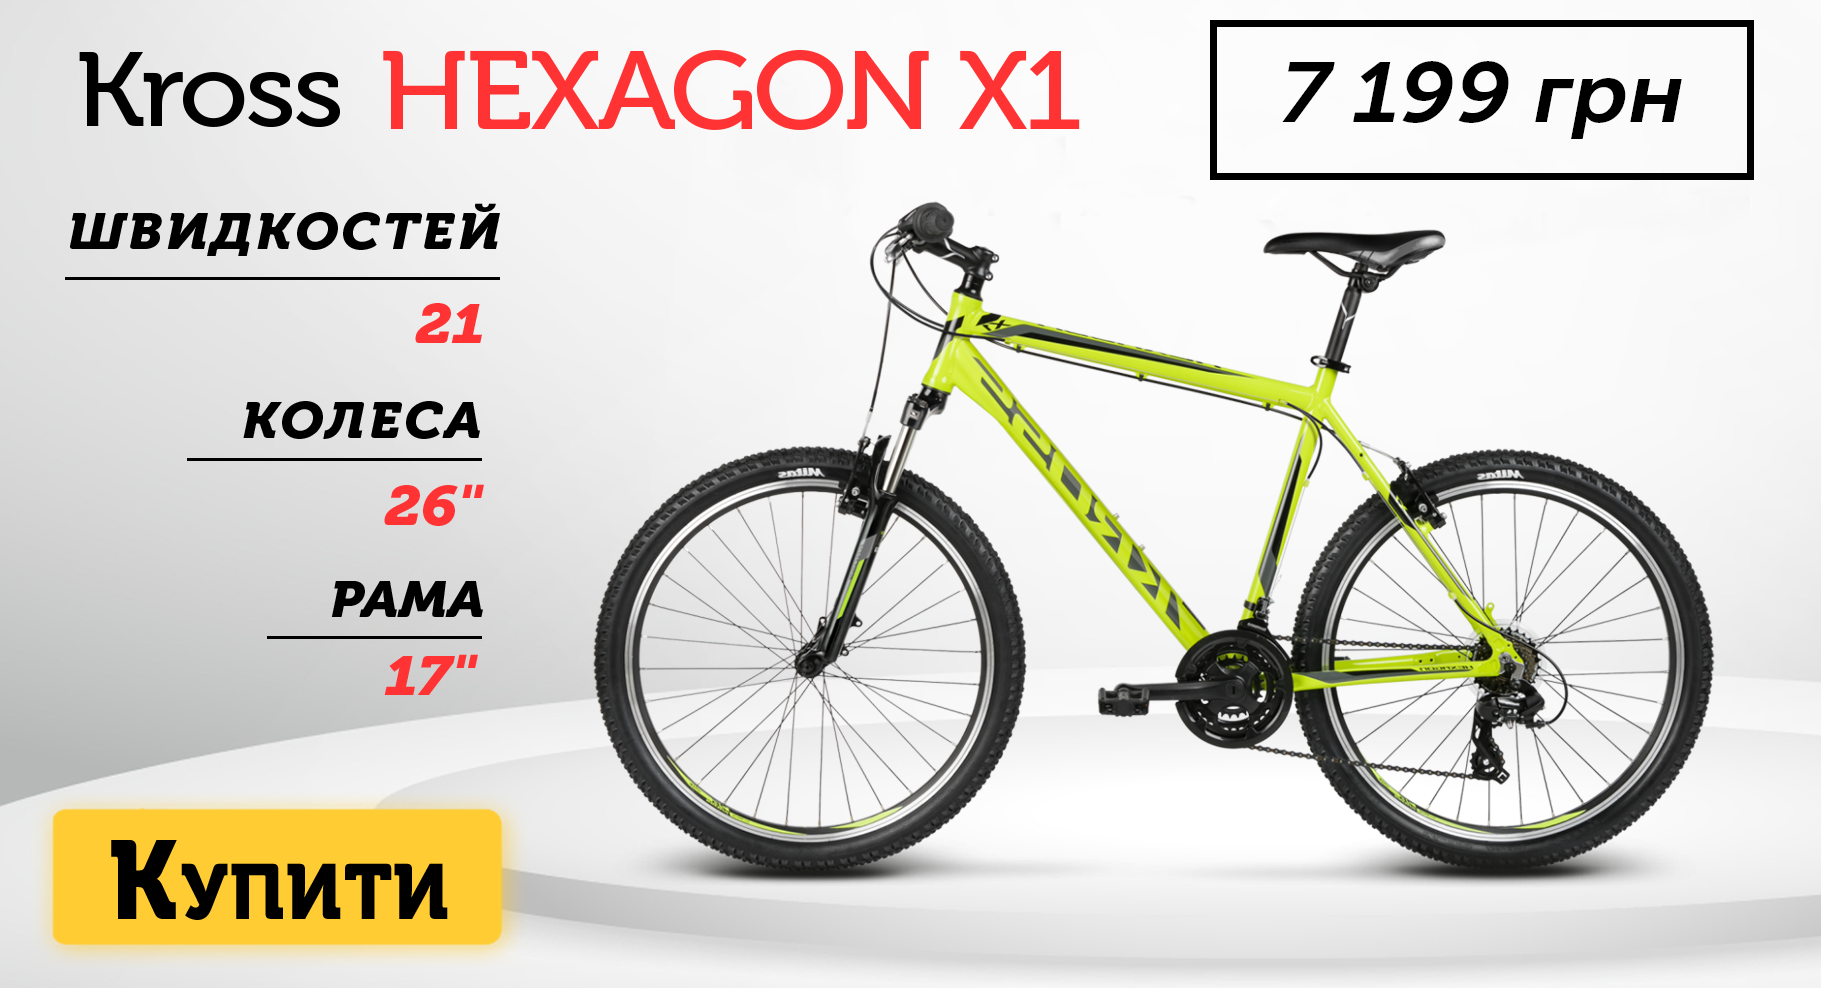 Kross HEXAGON X1